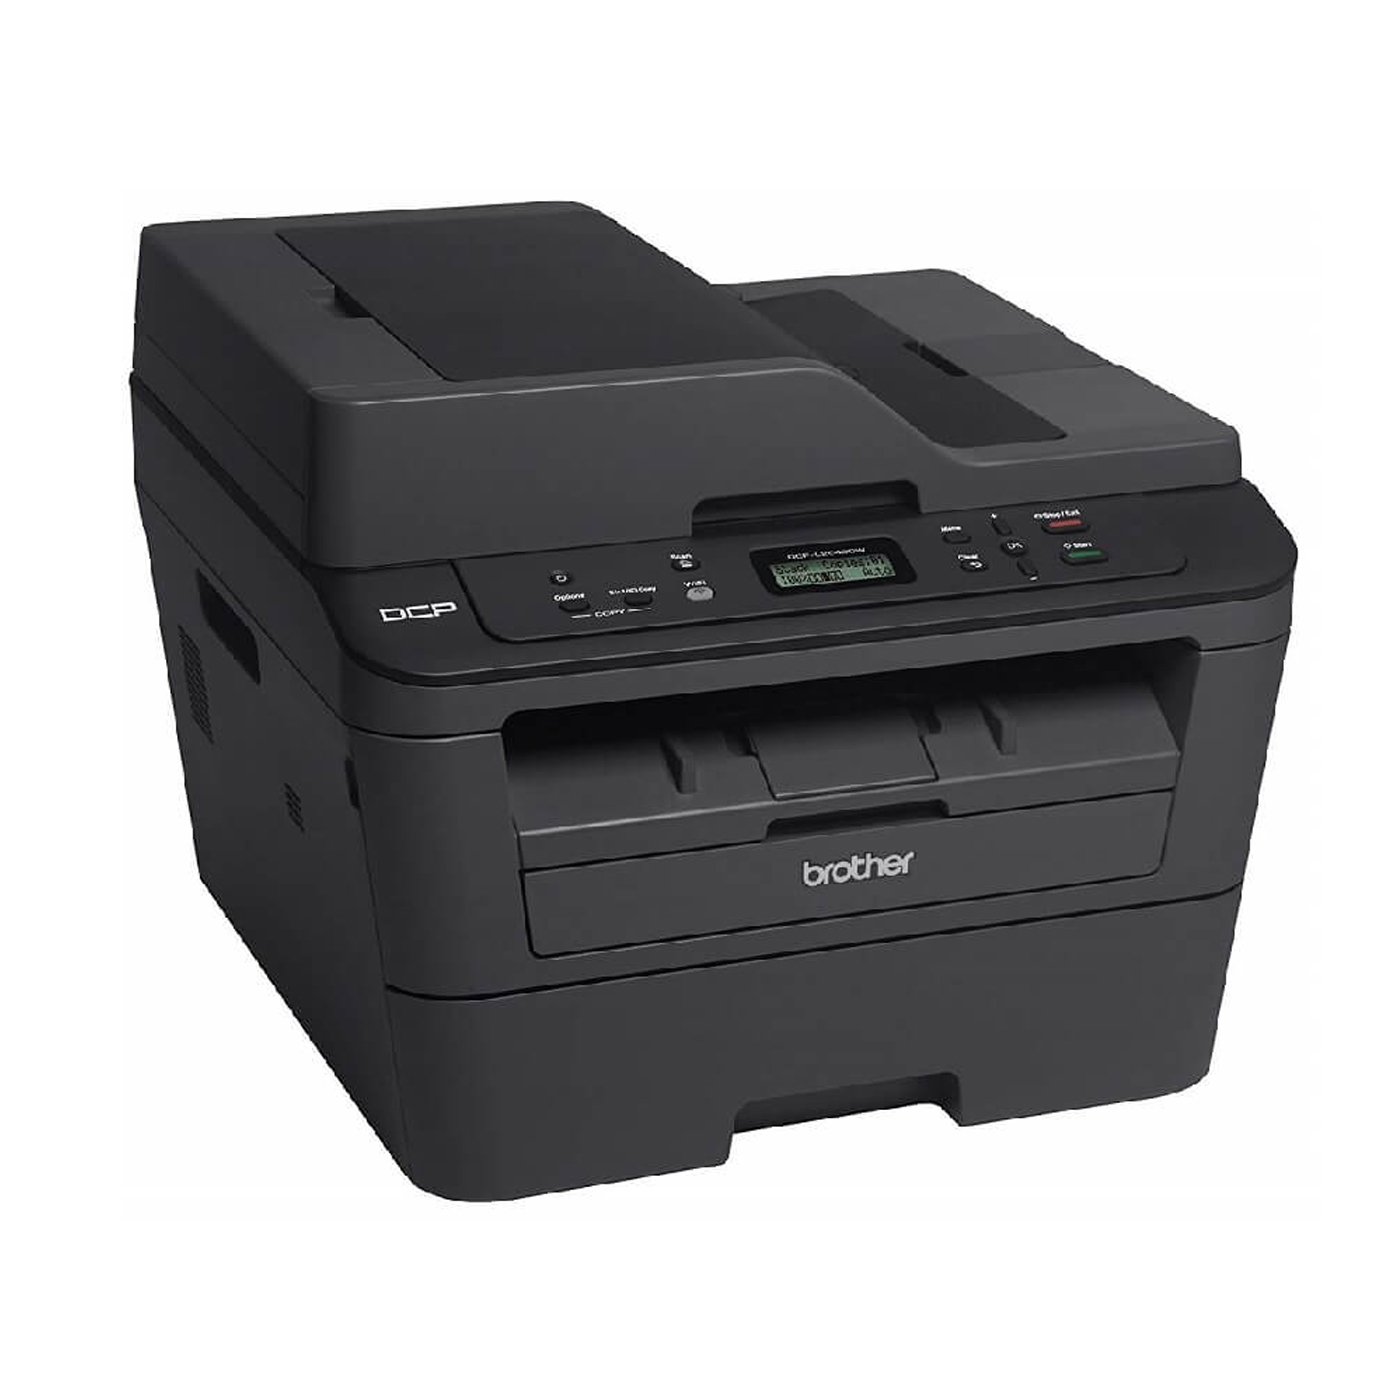 3-BROTHER-DCP-L2540DW